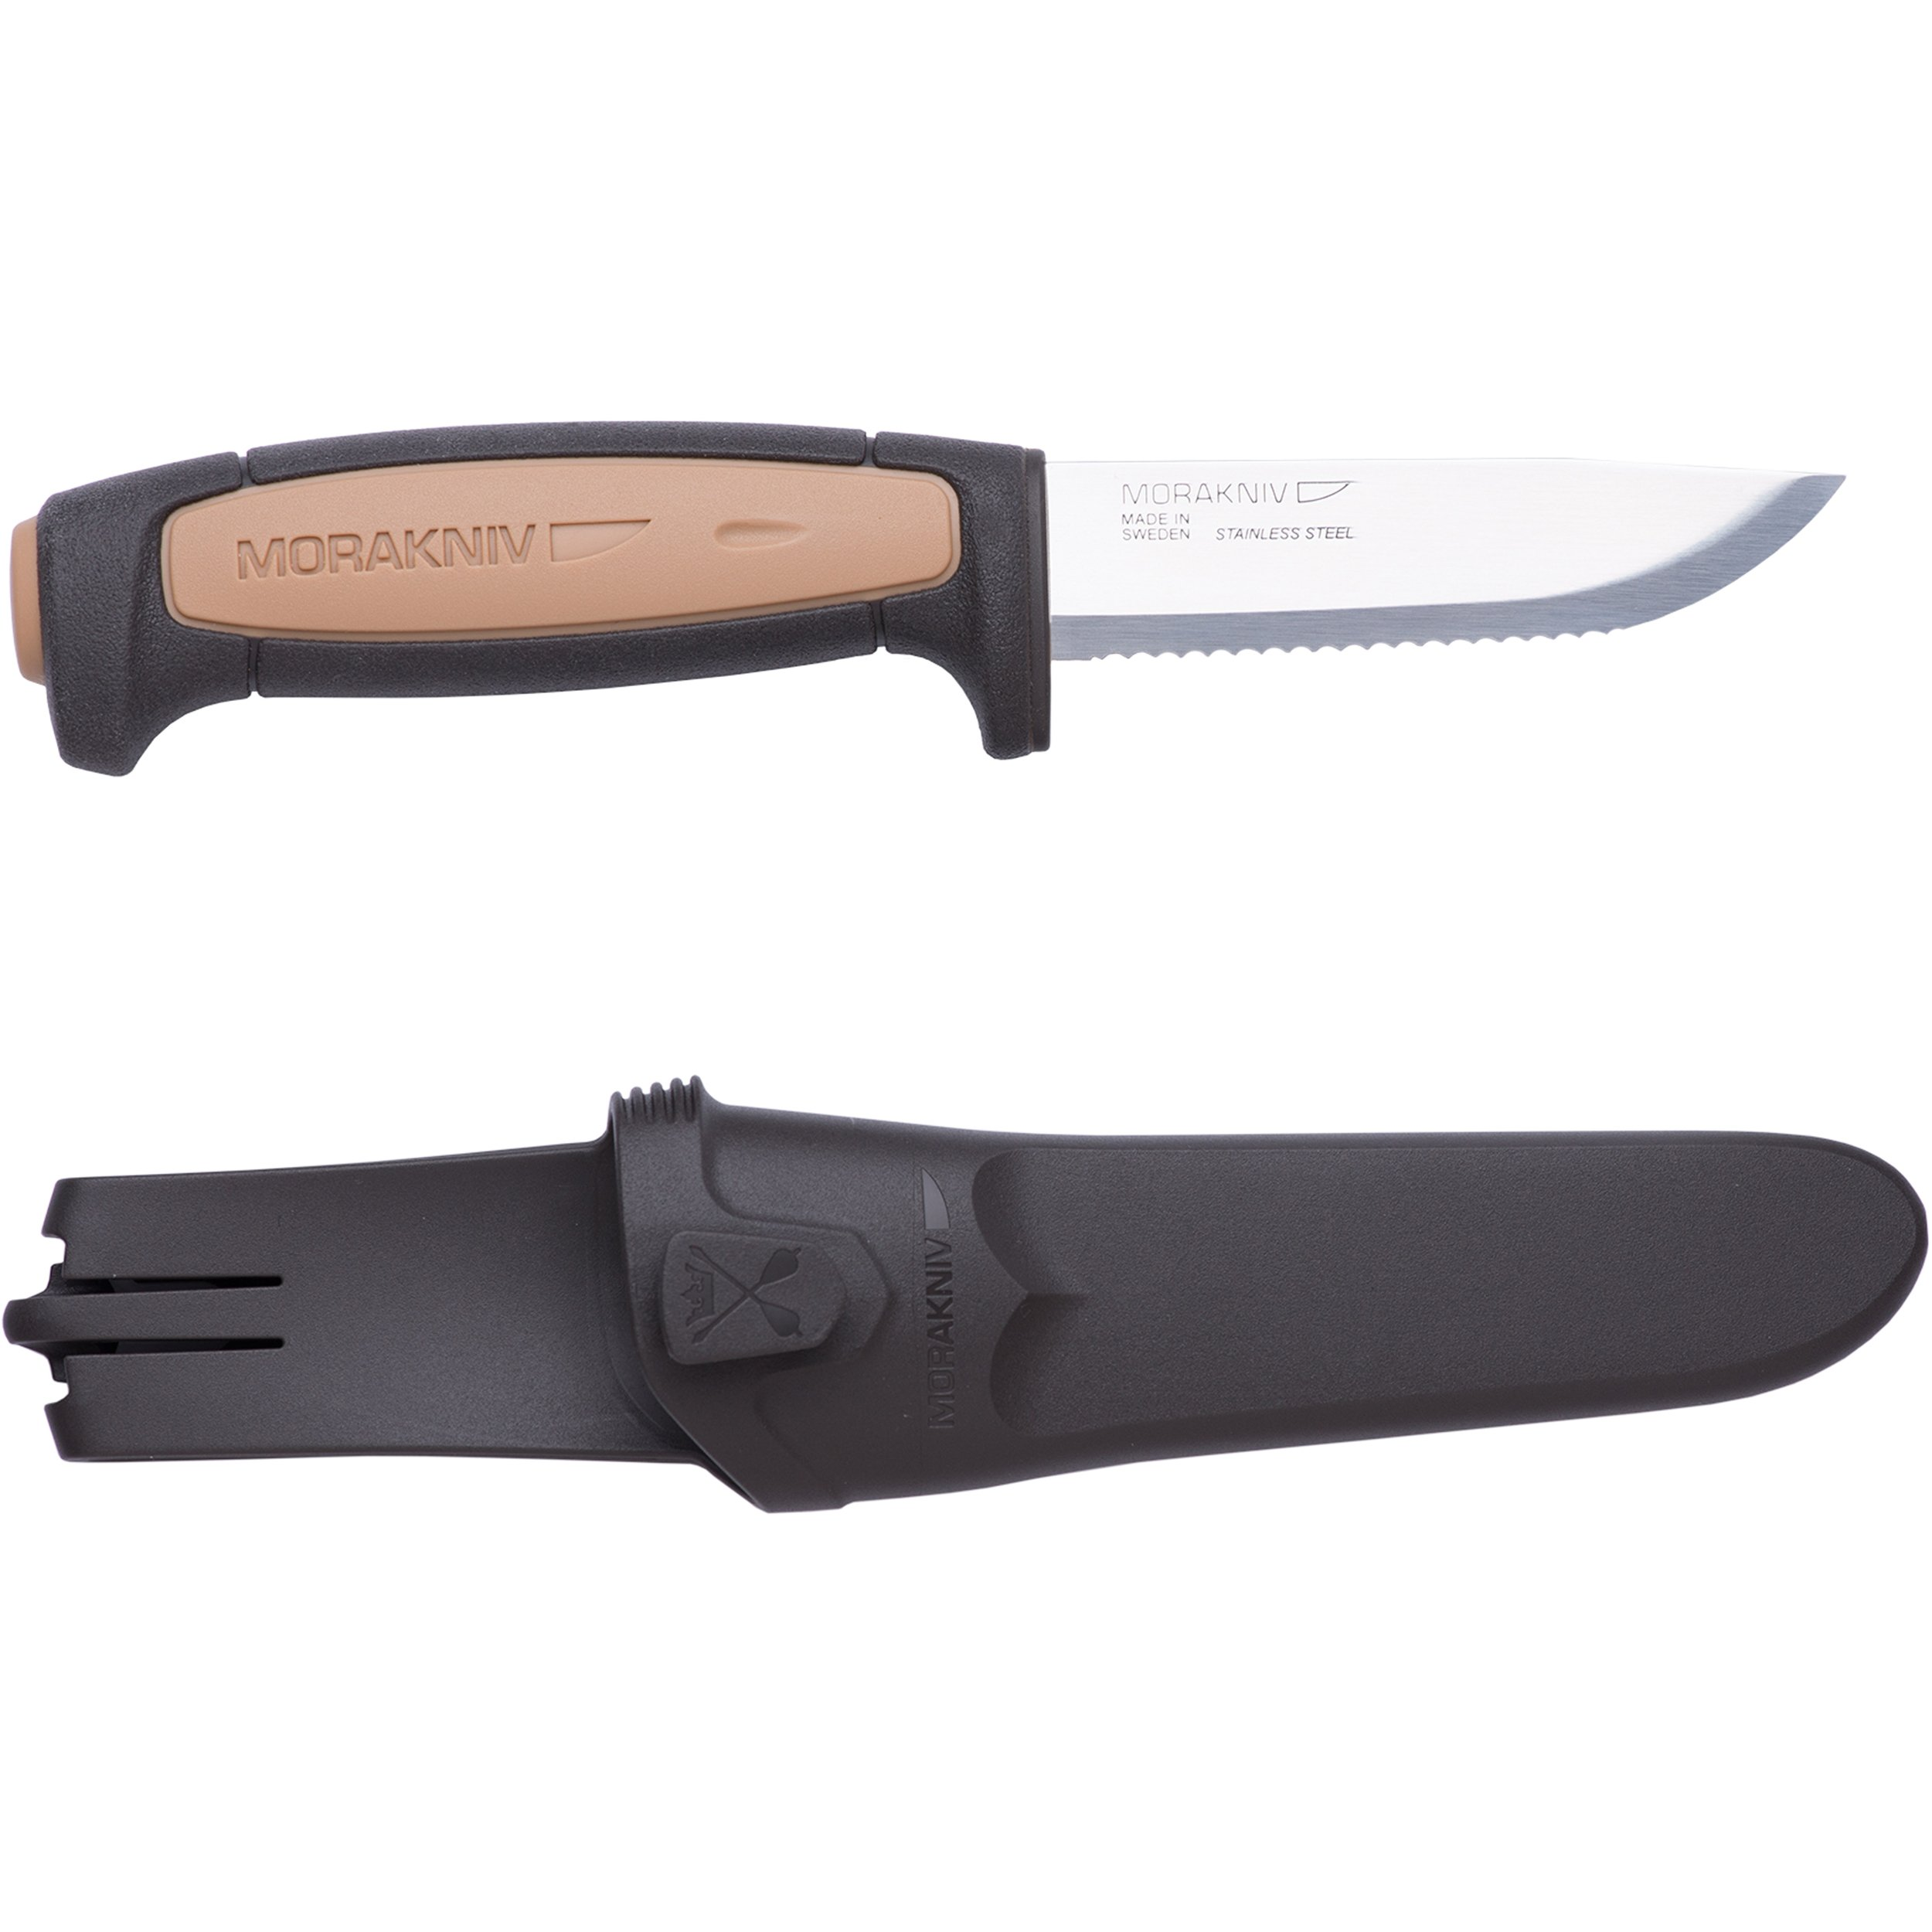 Morakniv Craftline Rope Trade Knife with Serrated Sandvik Stainess Steel Blade and Combi-Sheath, 3.6-Inch